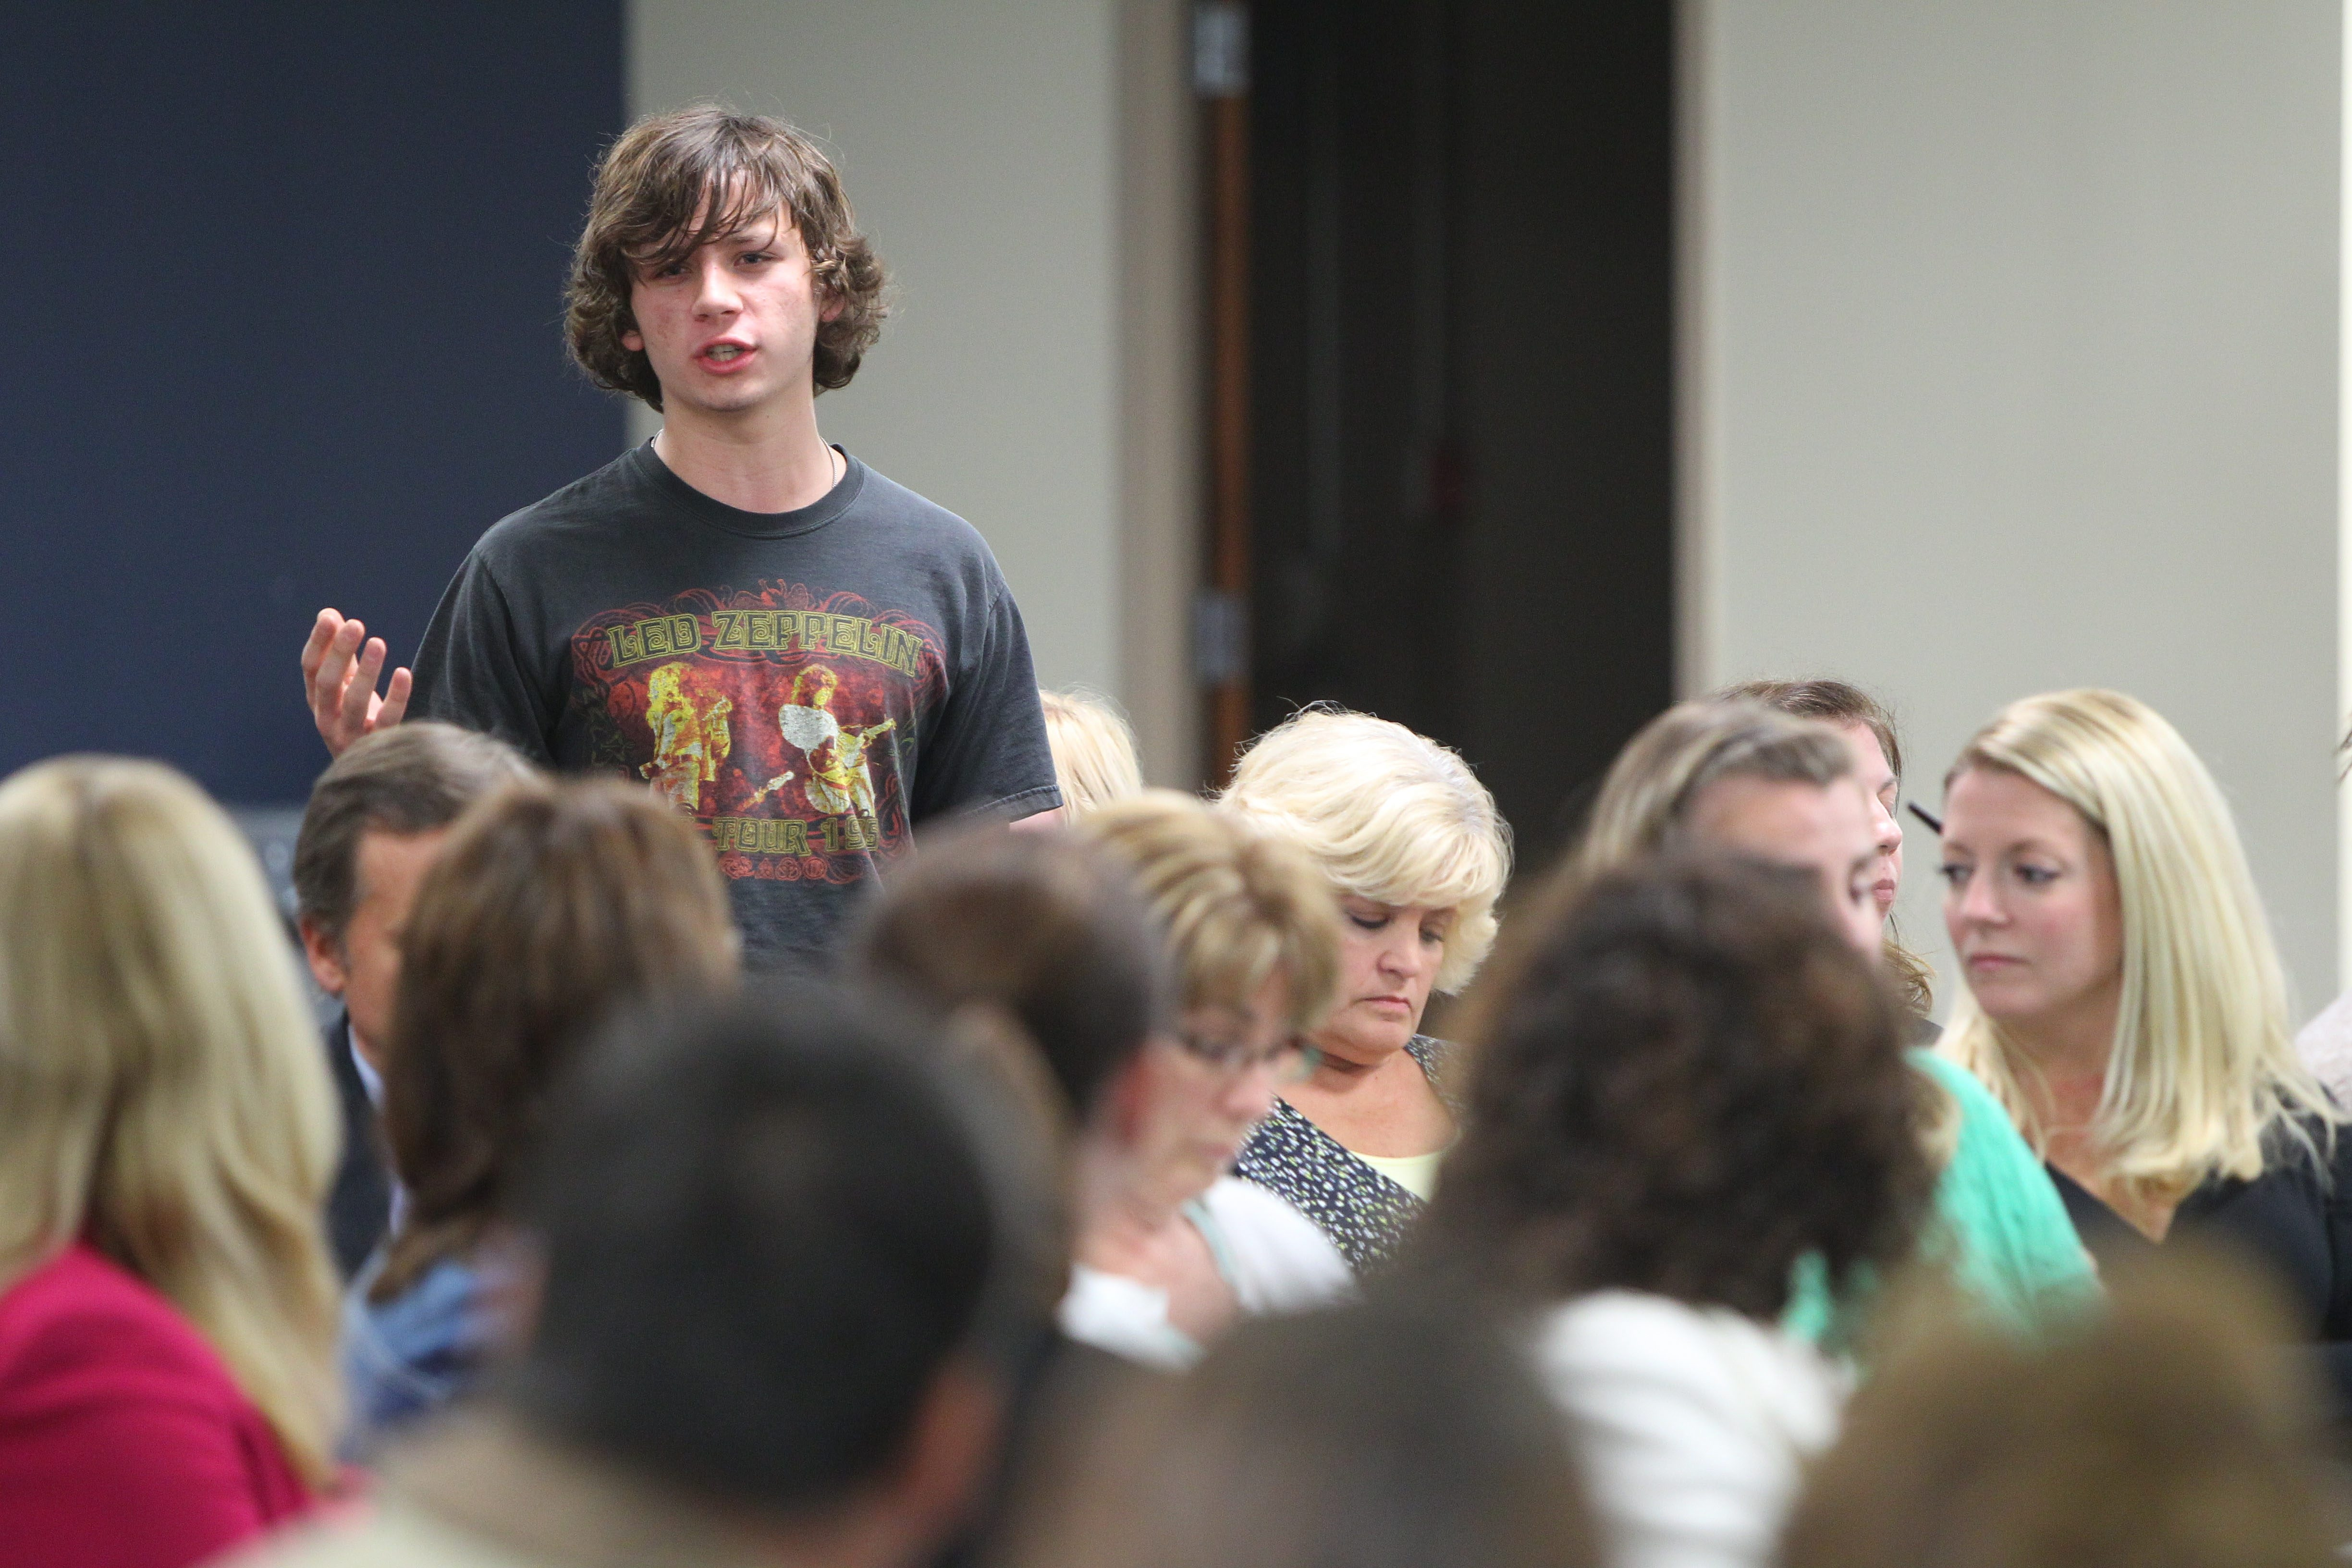 Gatlin Walters, a senior in the Hamburg Central Schools District, speaks with residents during a meeting about their schools at BOCES in West Seneca on Thursday.